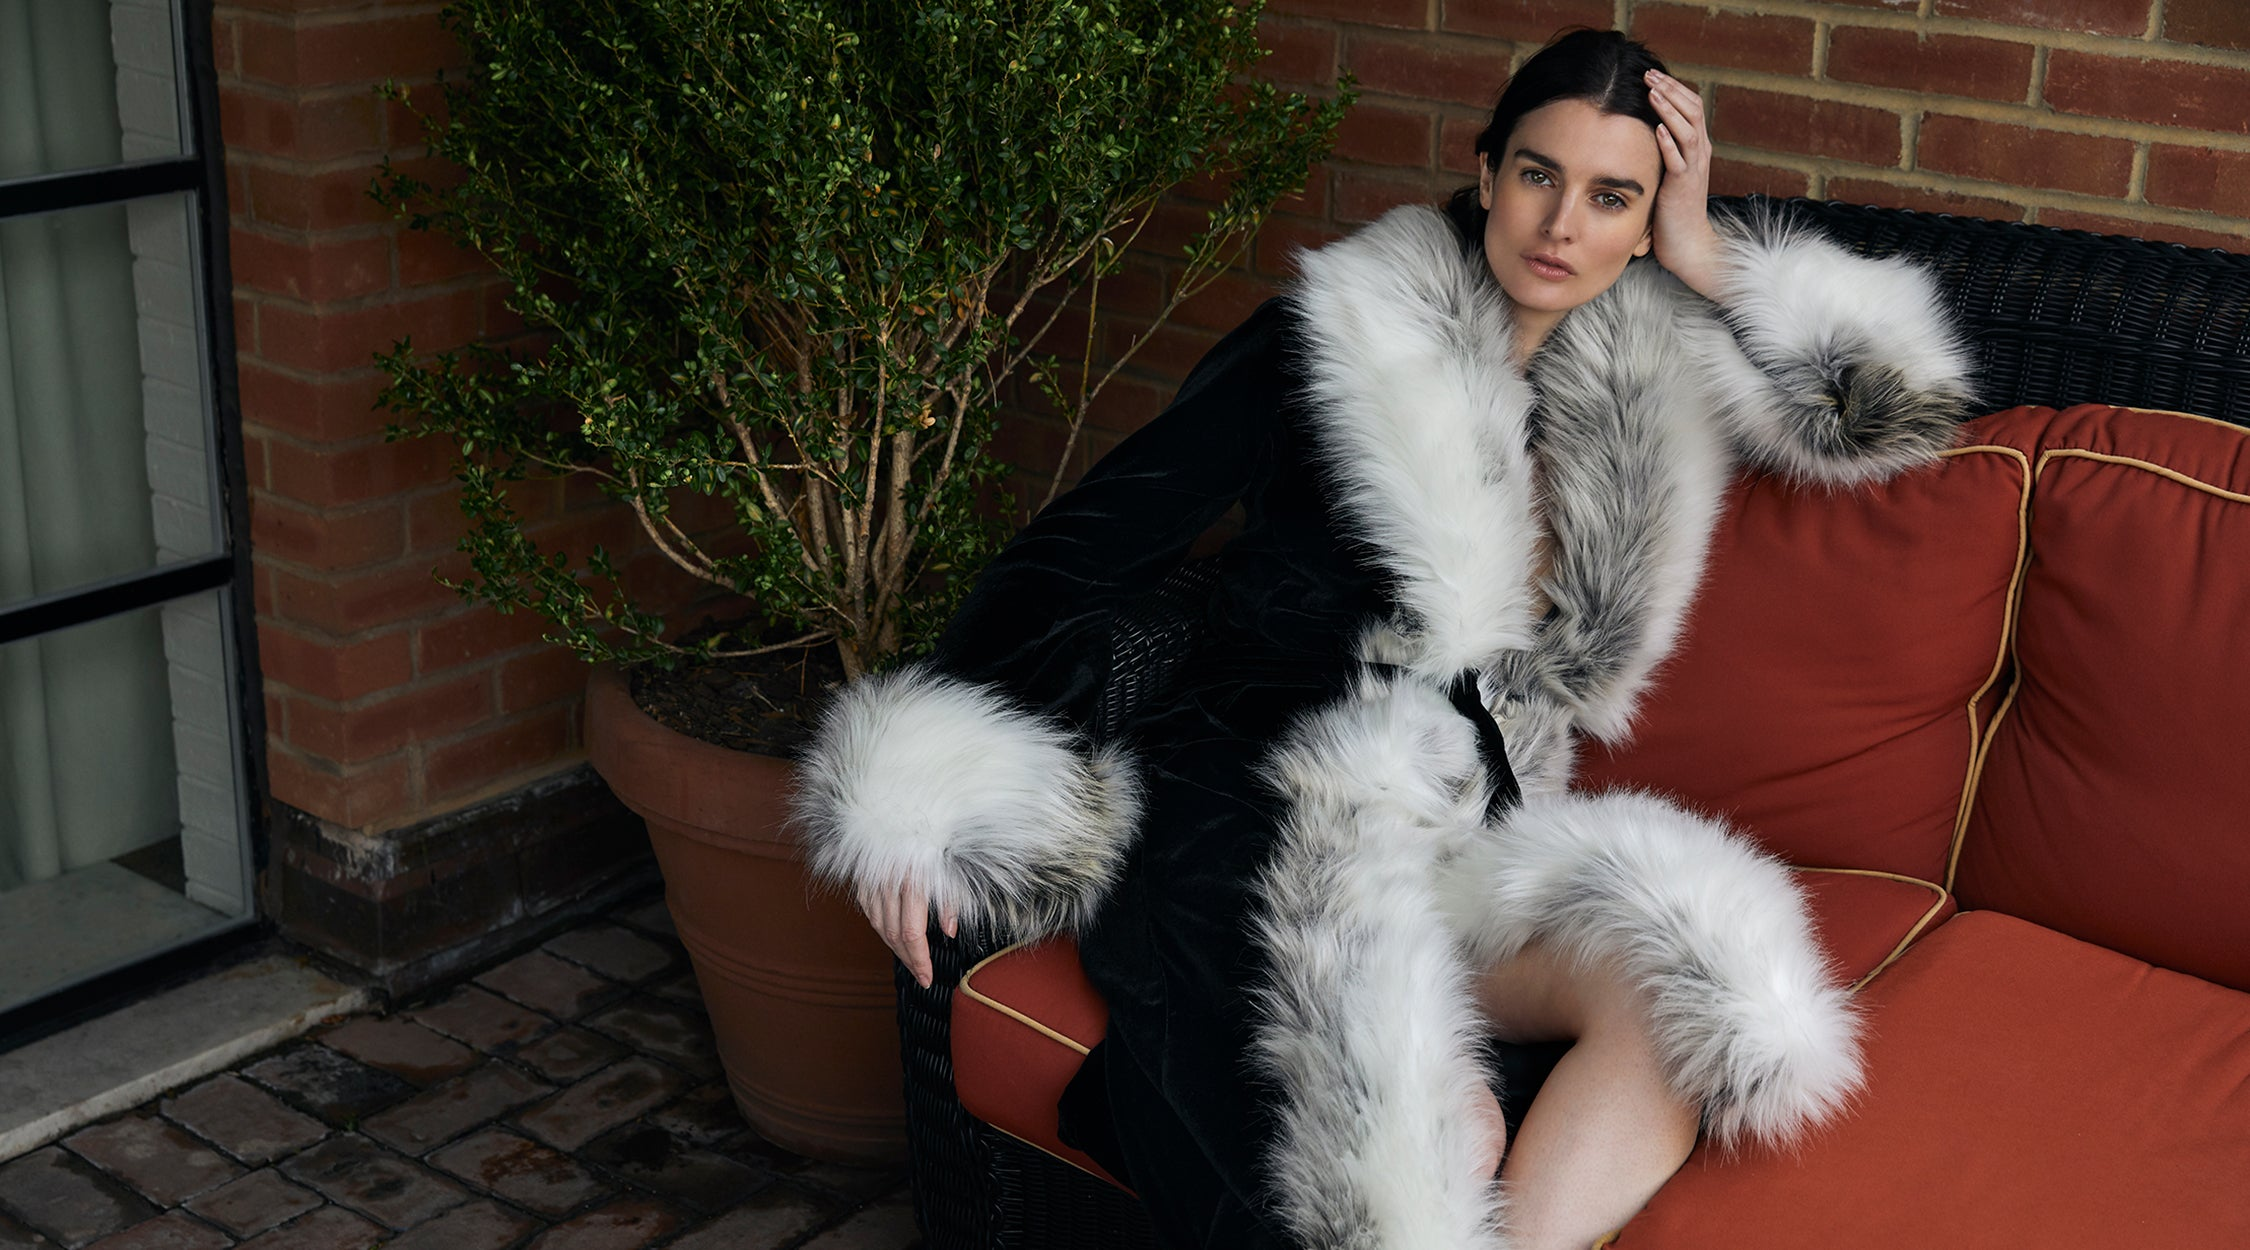 A Packshot Of Marei1998's Iconic Powderpuff Long Velvet Coat In Mixed Color. The Silk Velvet Material, Combined With Faux Fur Trims, Creates A Contemporary Vintage Look. Featuring Wide Lapel Collar And Bell Sleeves, It Is Finished With A Self-Tie Belt To Define The Waist. As Worn By The Model. Side View.